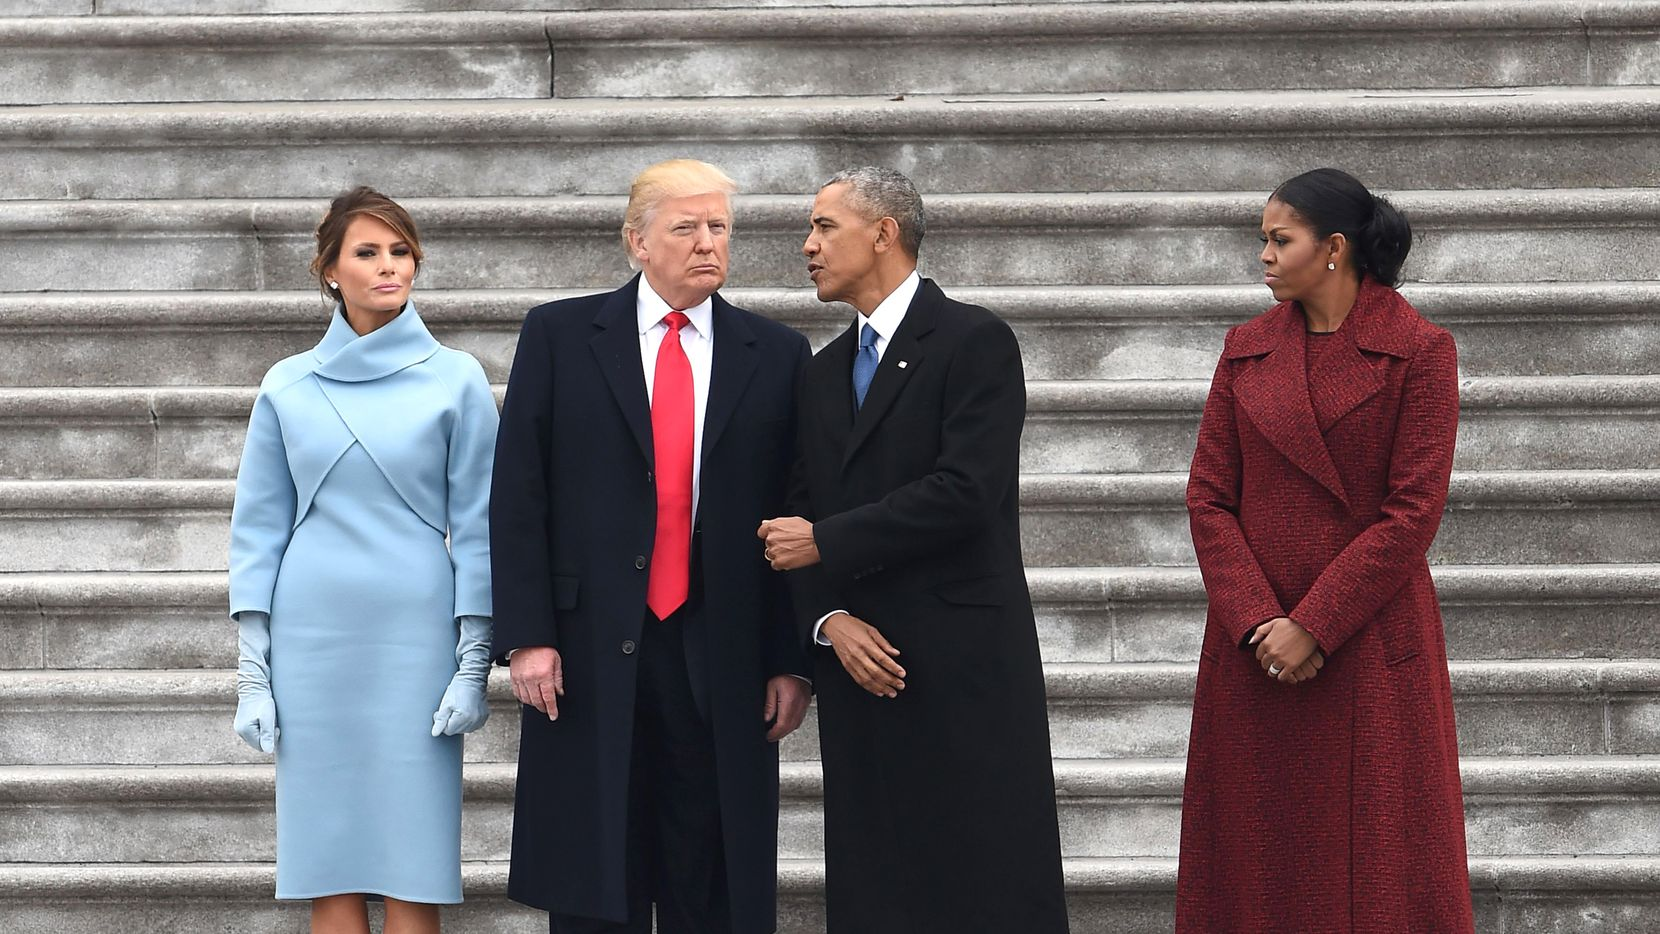 US First Lady Melania Trump and President Donald Trump stand with former President Barack Obama and Michelle Obama after inauguration ceremonies at the US Capitol on January 20, 2017 in Washington,